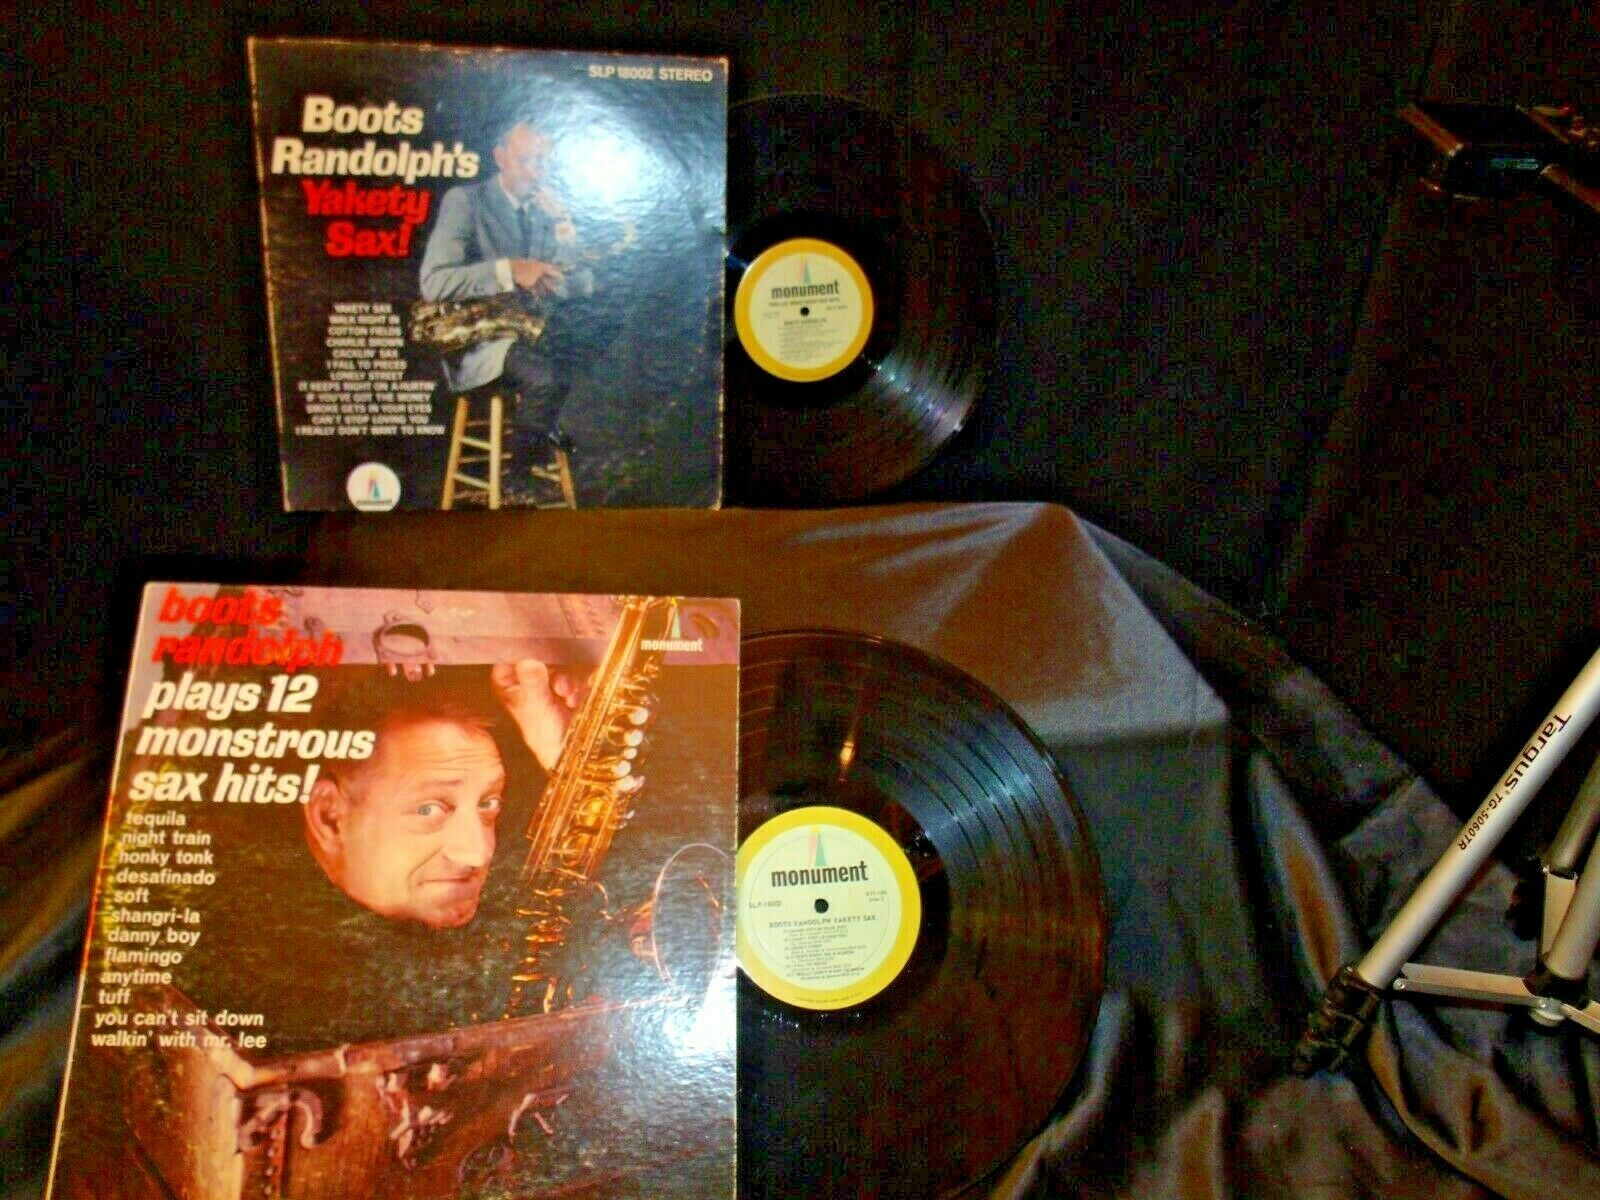 Boots Randolph Yakety Sax SLP 1800 + 12 Monster Sax Hits AA-192004 Vintage Colle